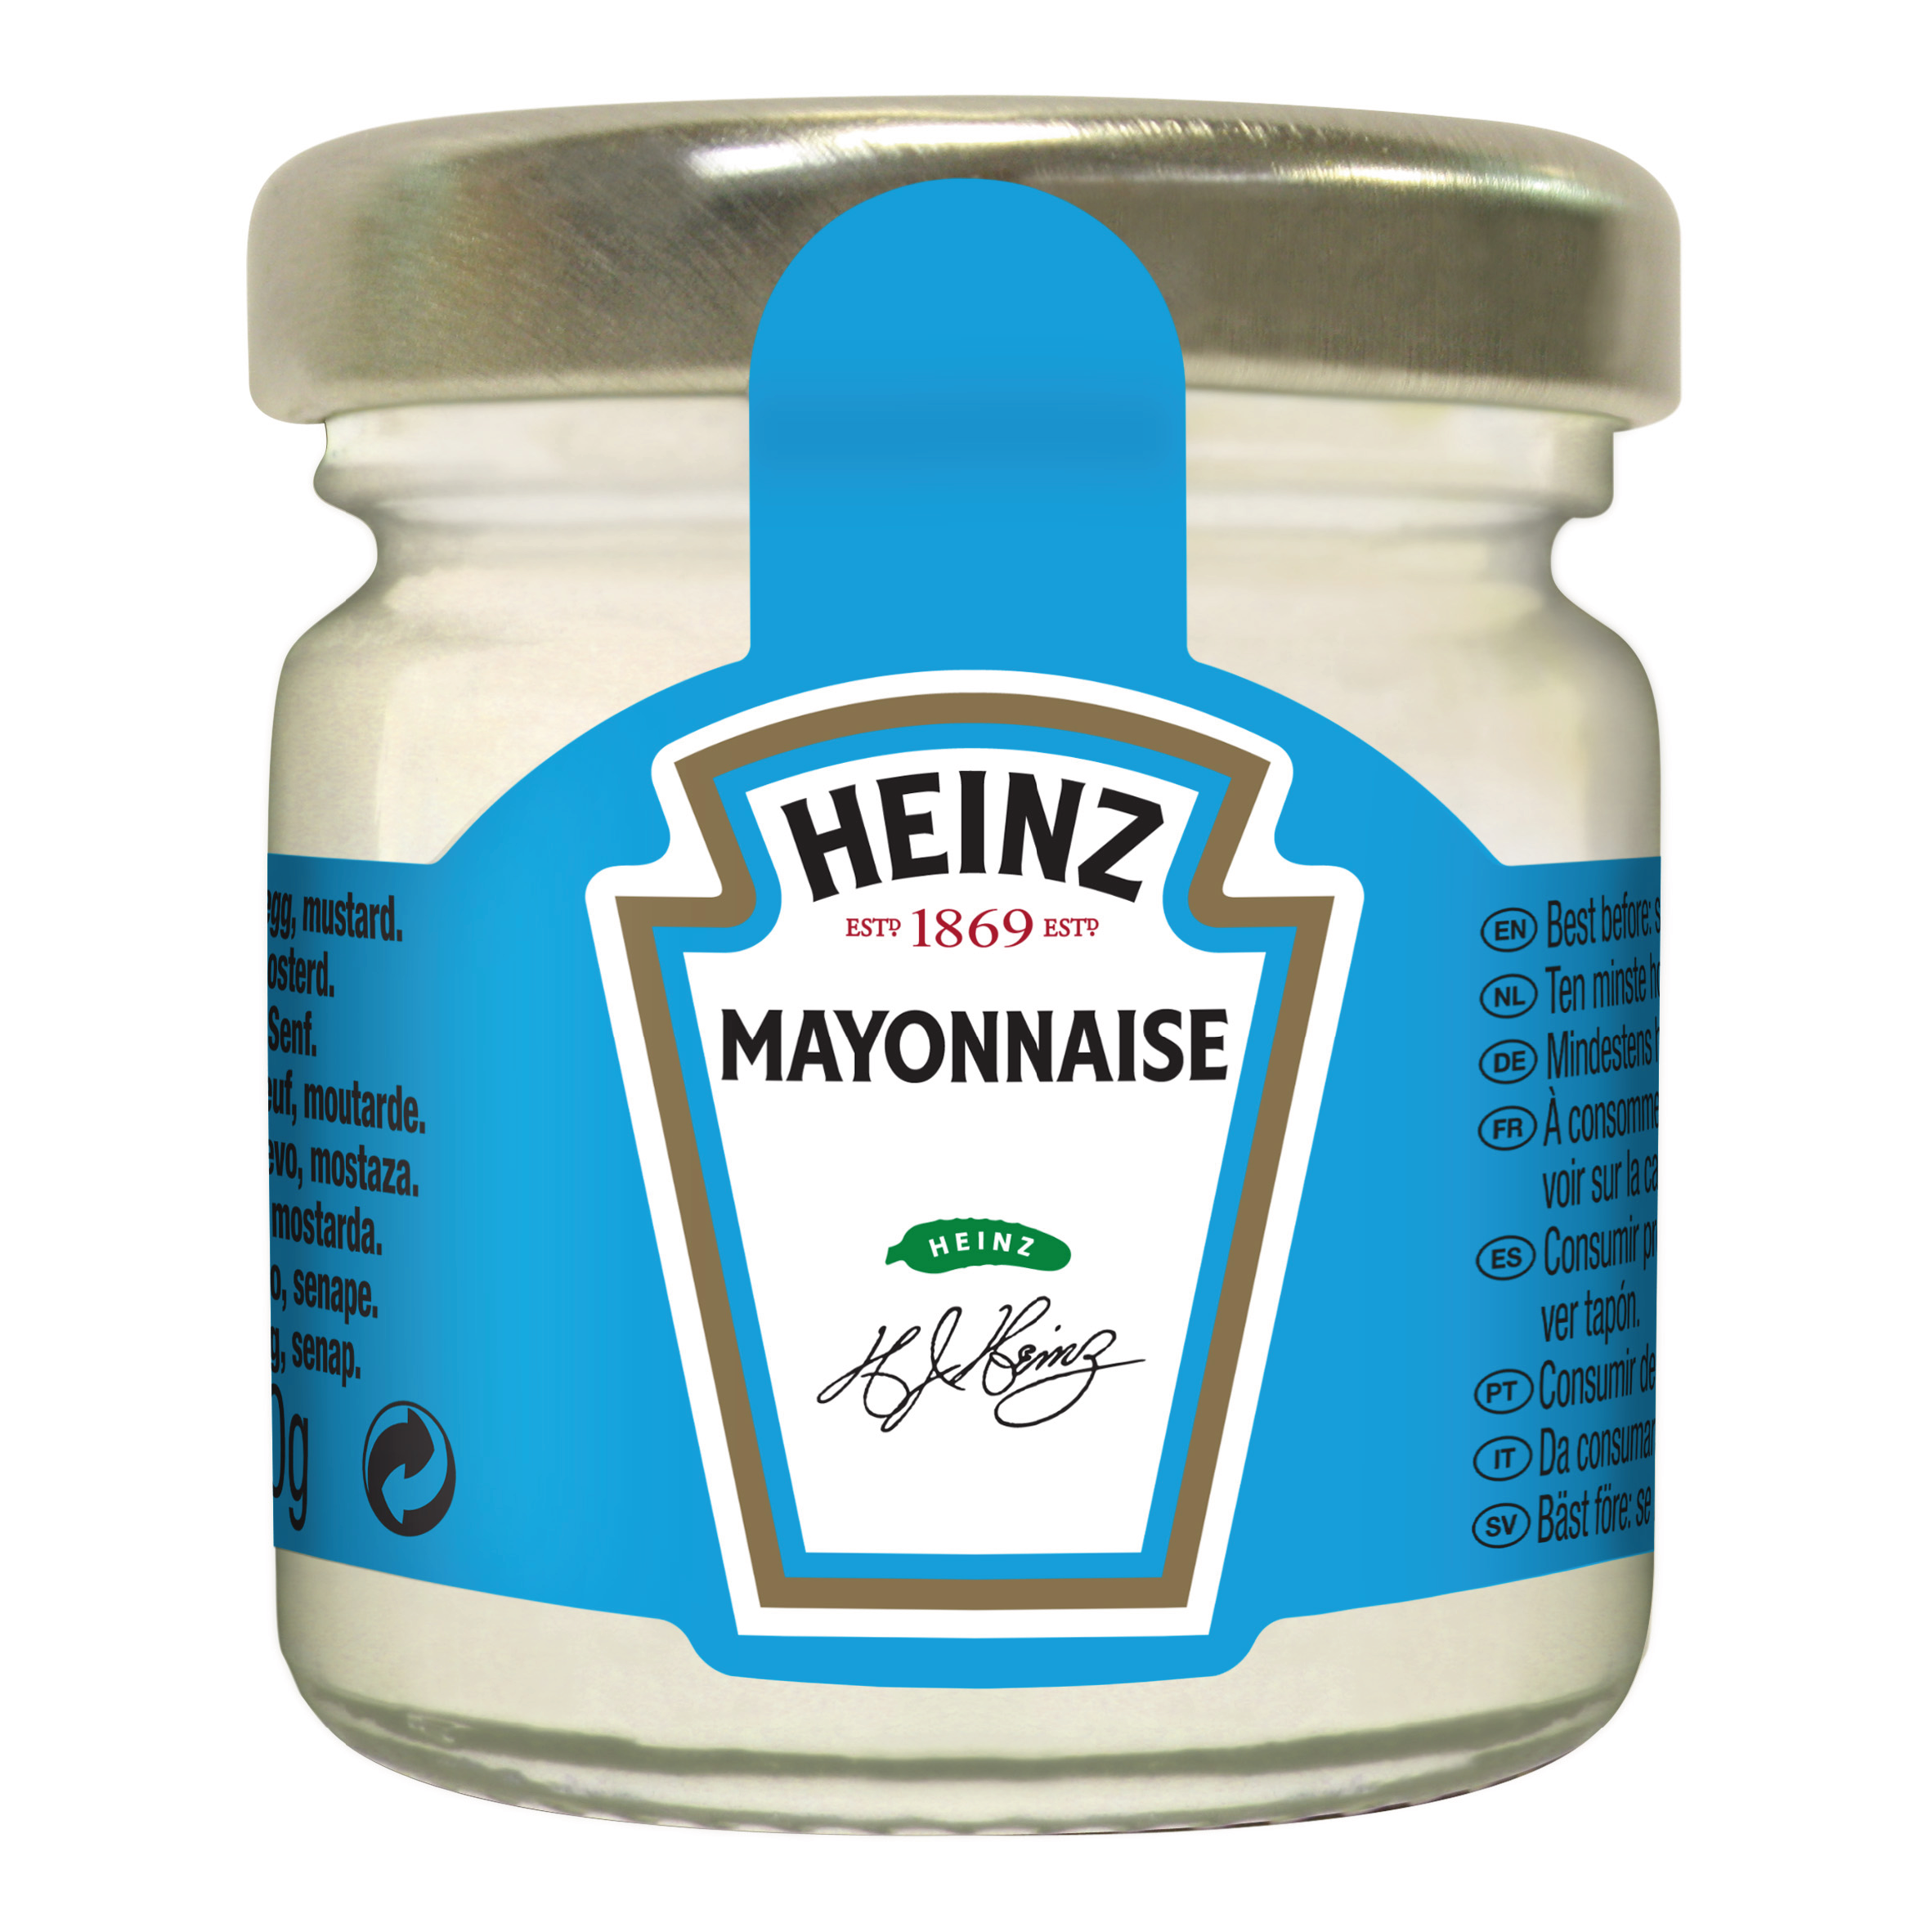 Heinz Mayonnaise 33ml Premium Mini Jars